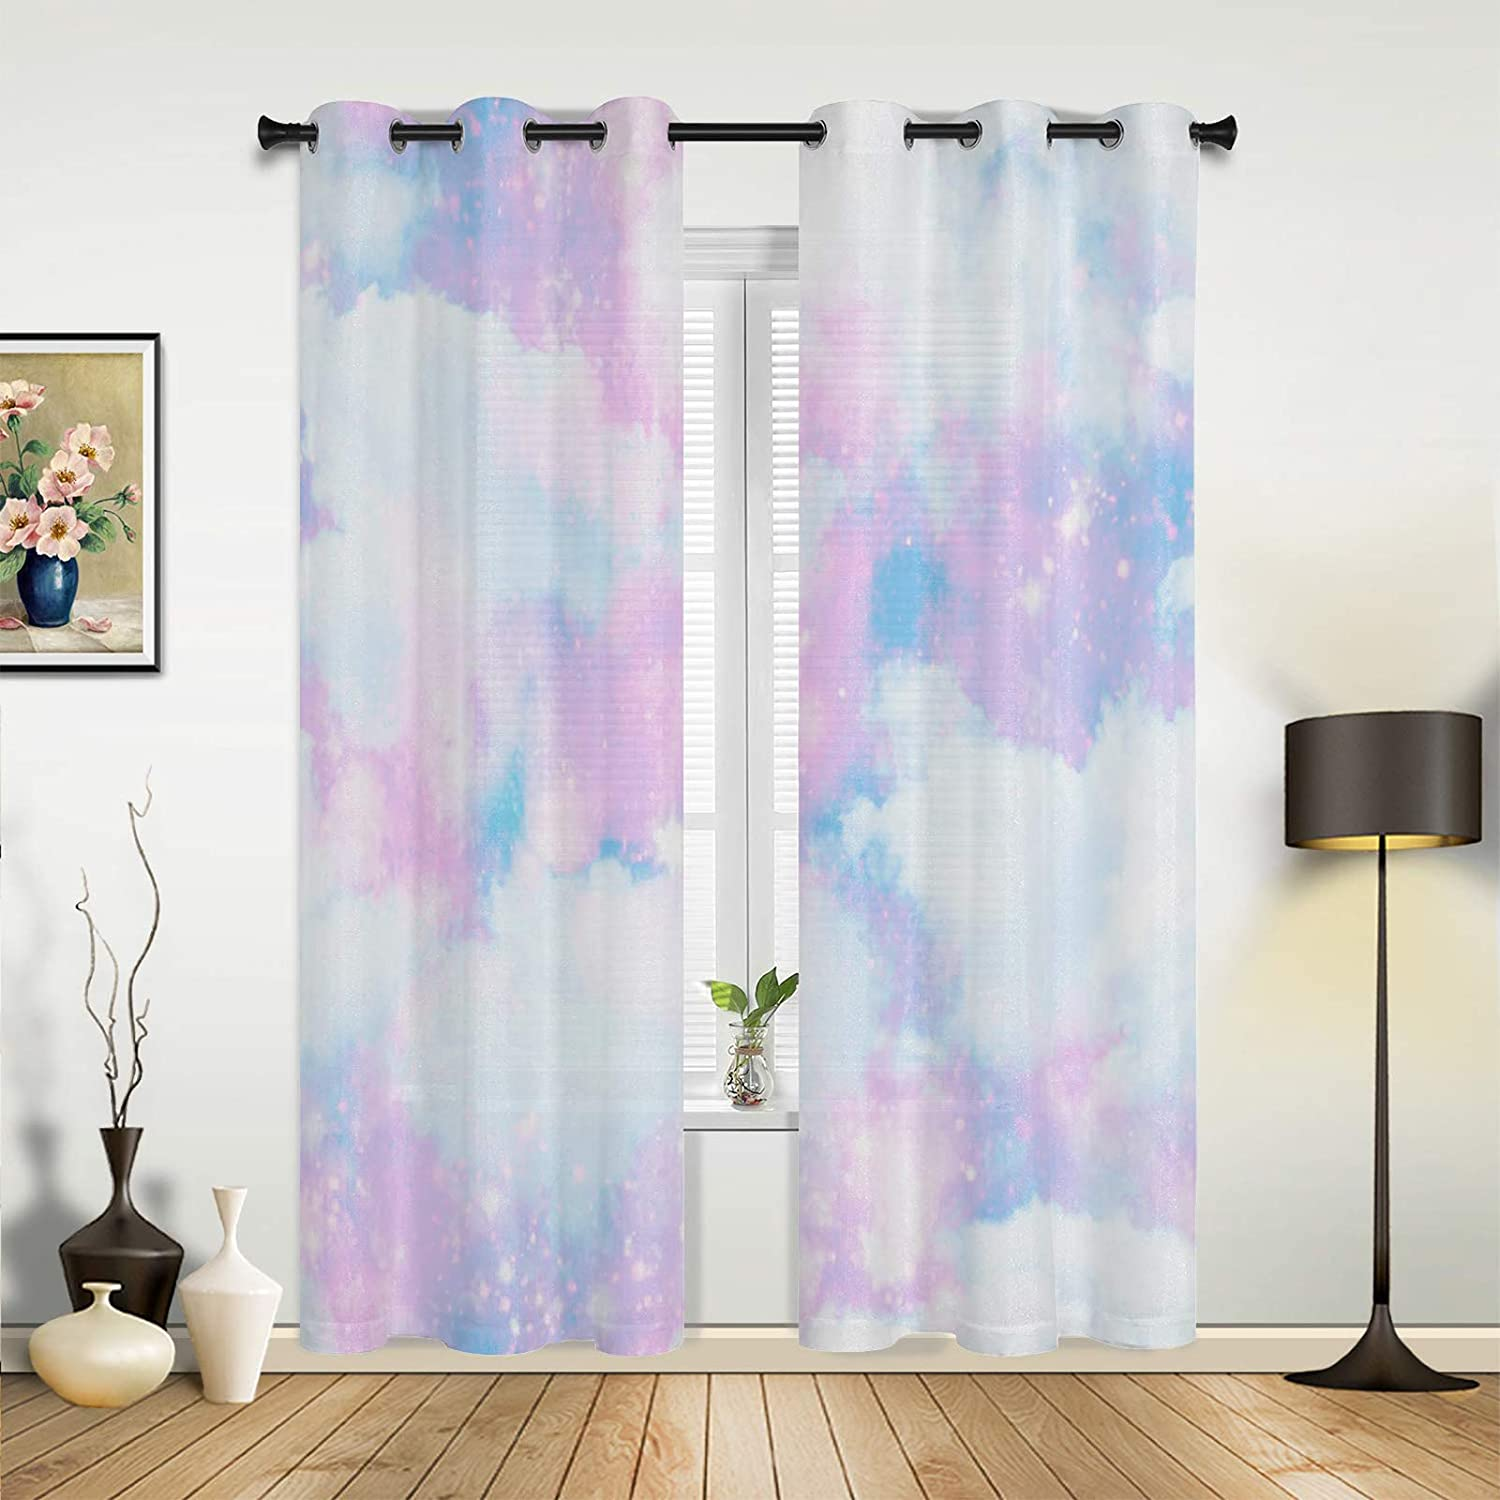 Window Sheer Curtains for Bedroom Room Ranking TOP17 67% OFF of fixed price Sky Living Dreamy Mysteri